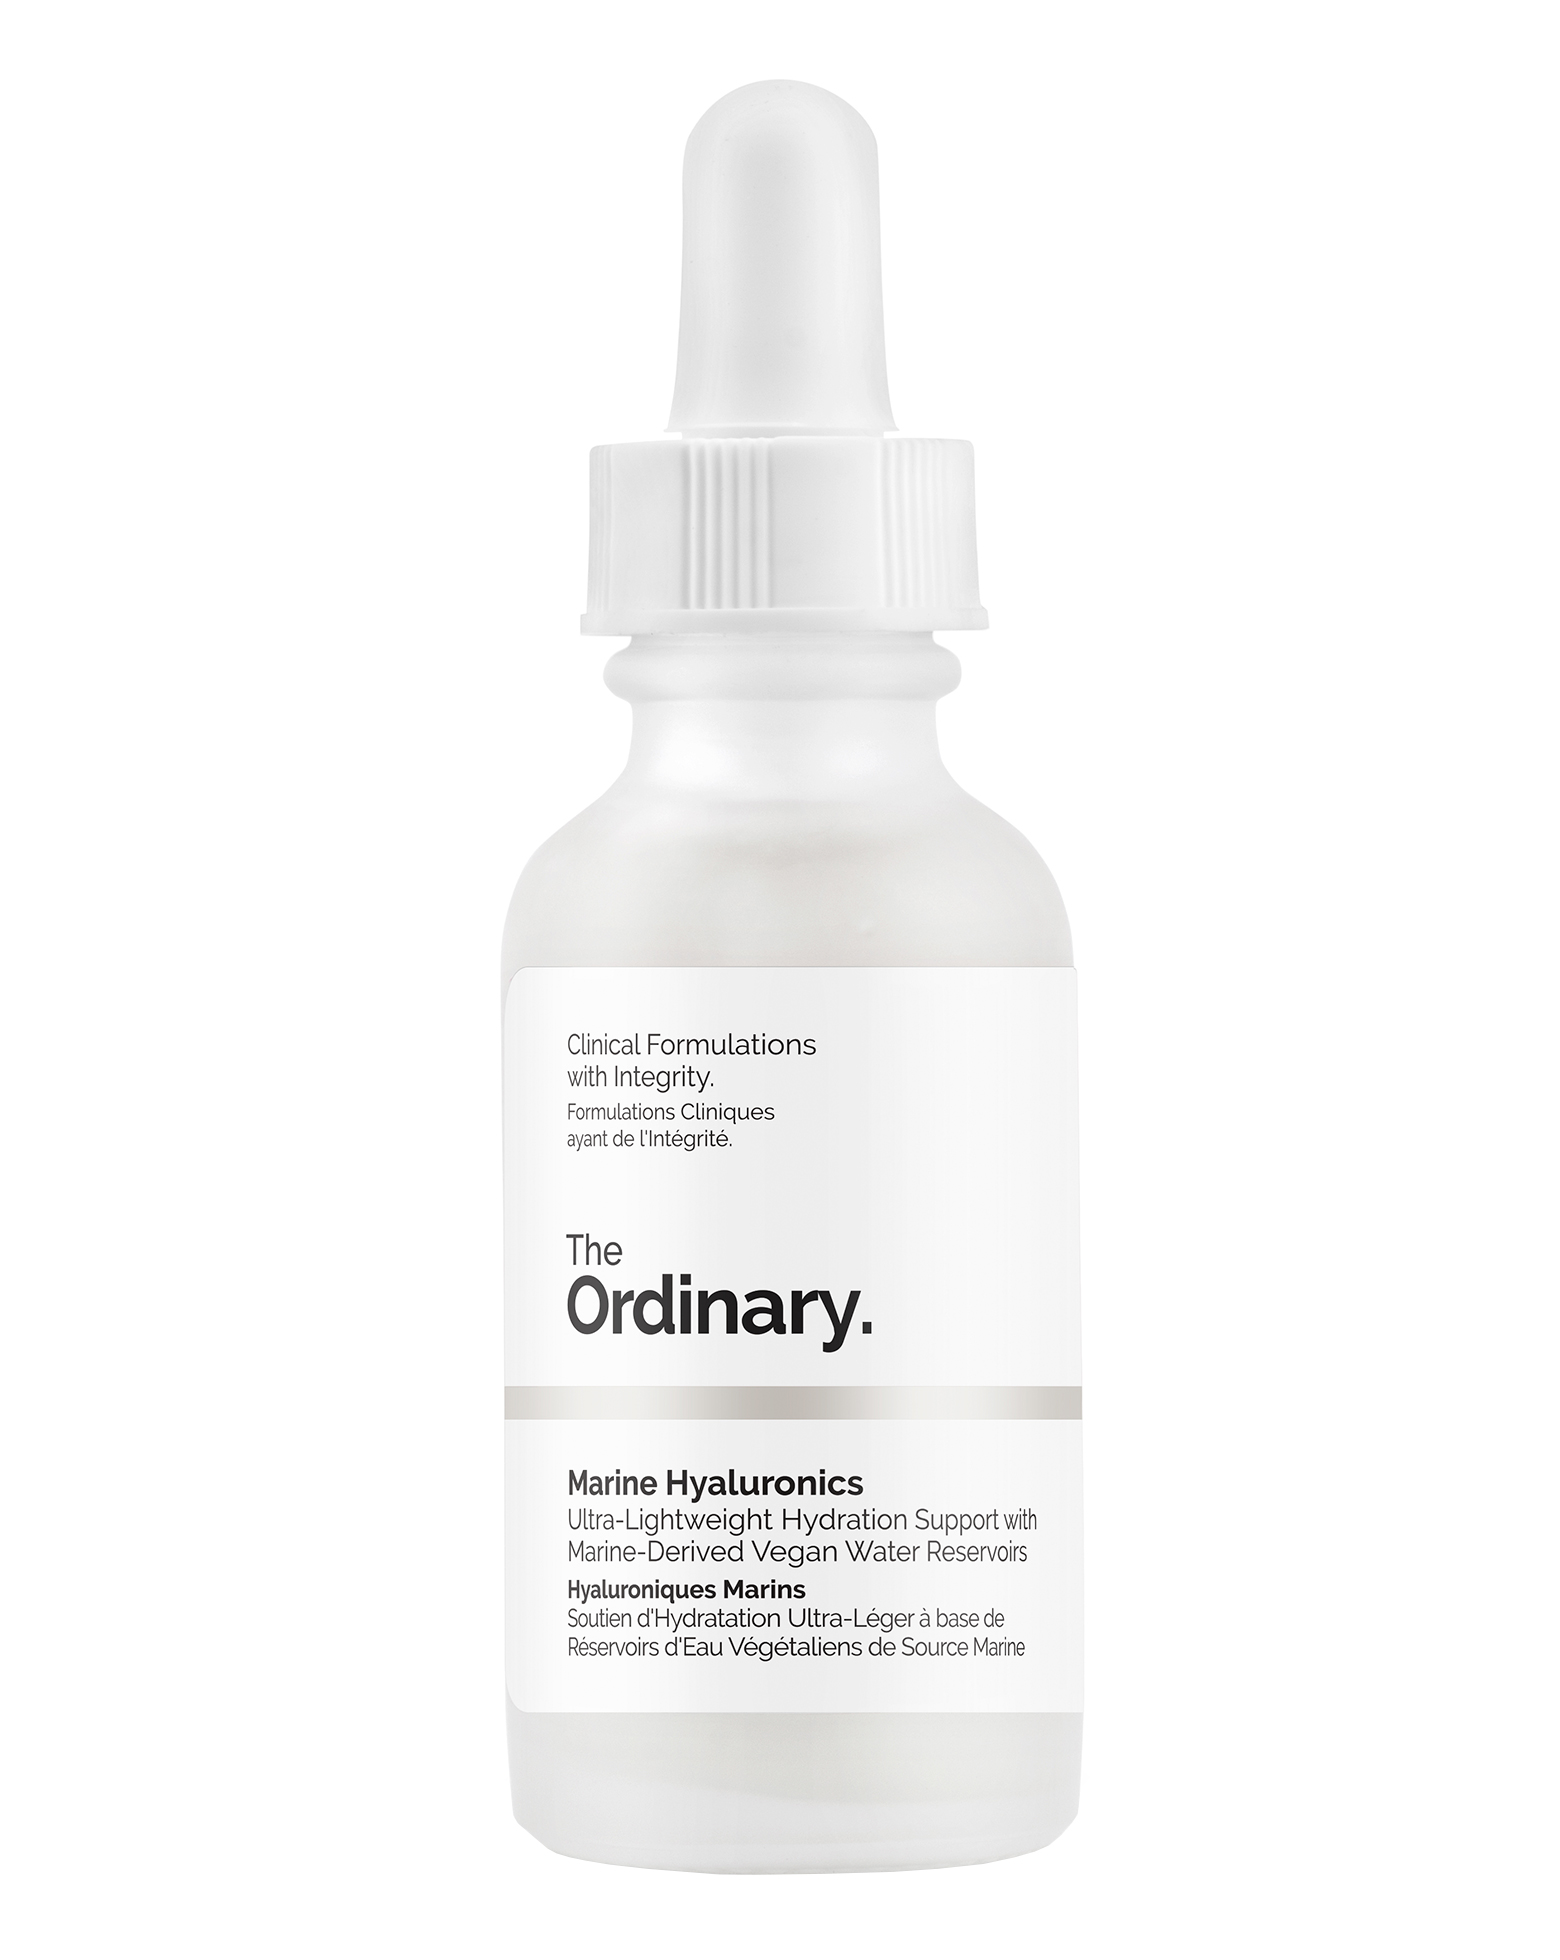 The Ordinary   Marine Hyaluronics   Cult Beauty